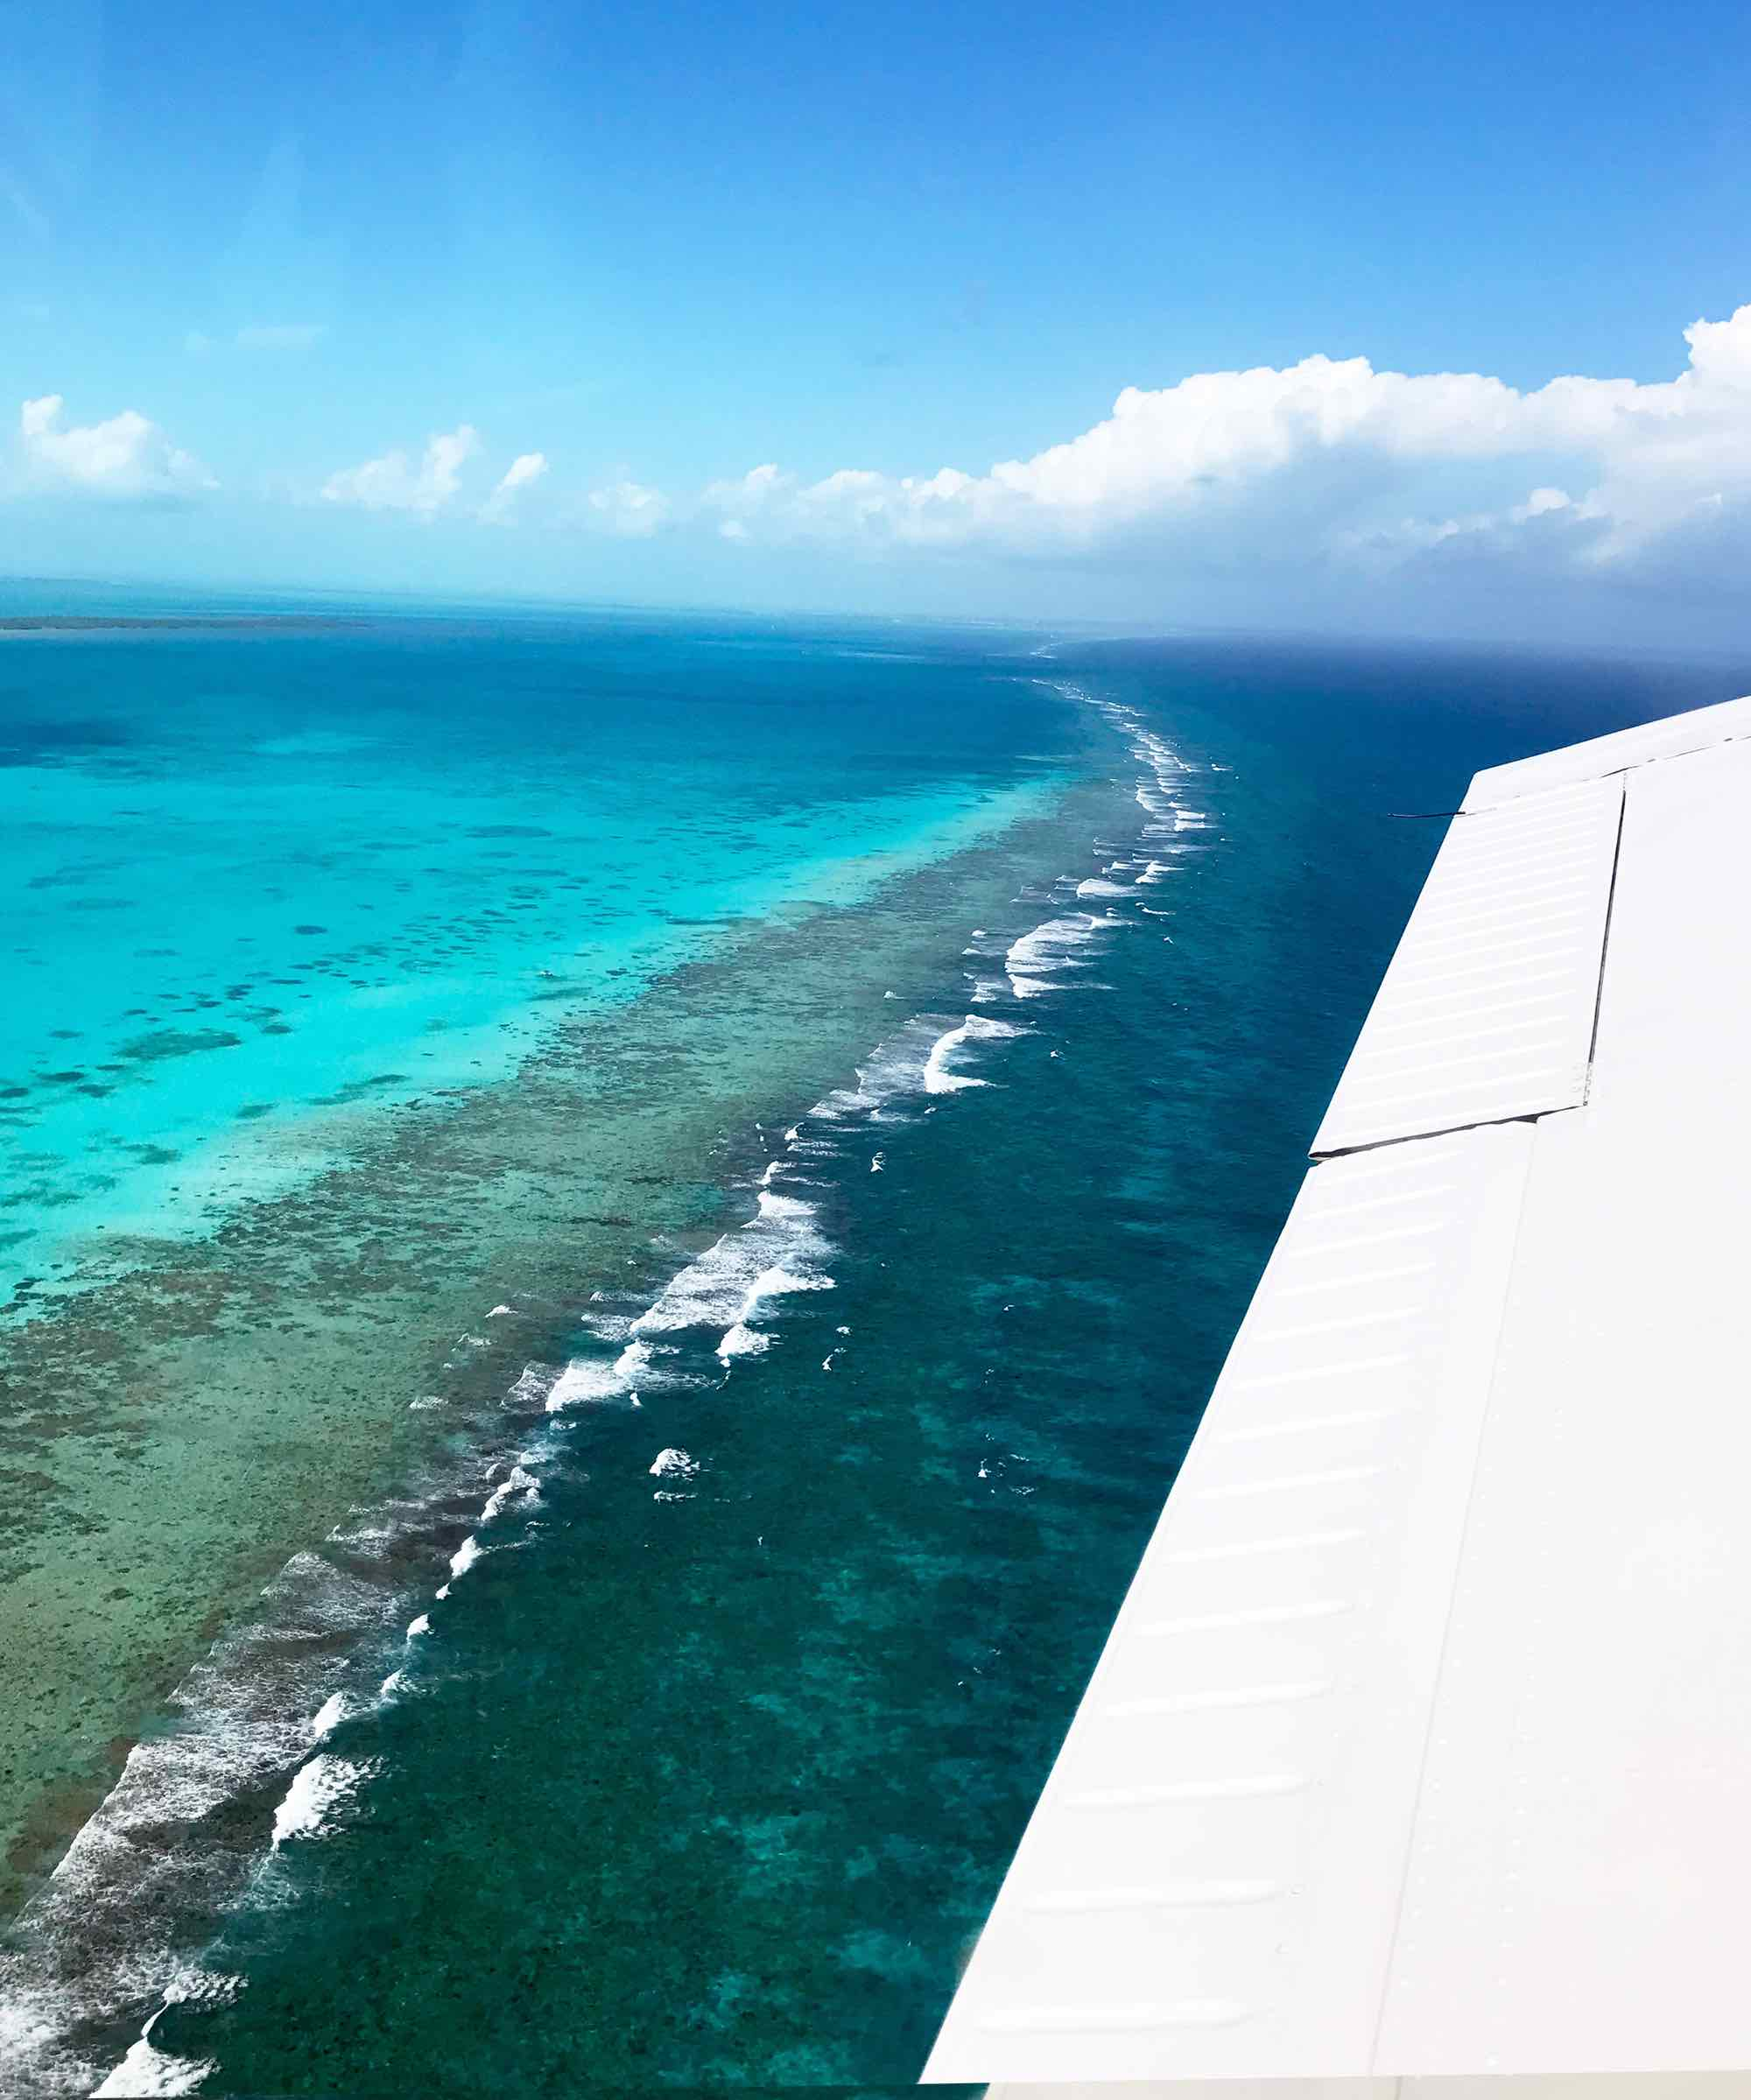 Flying over the Belize Barrier Reef to the Blue Hole